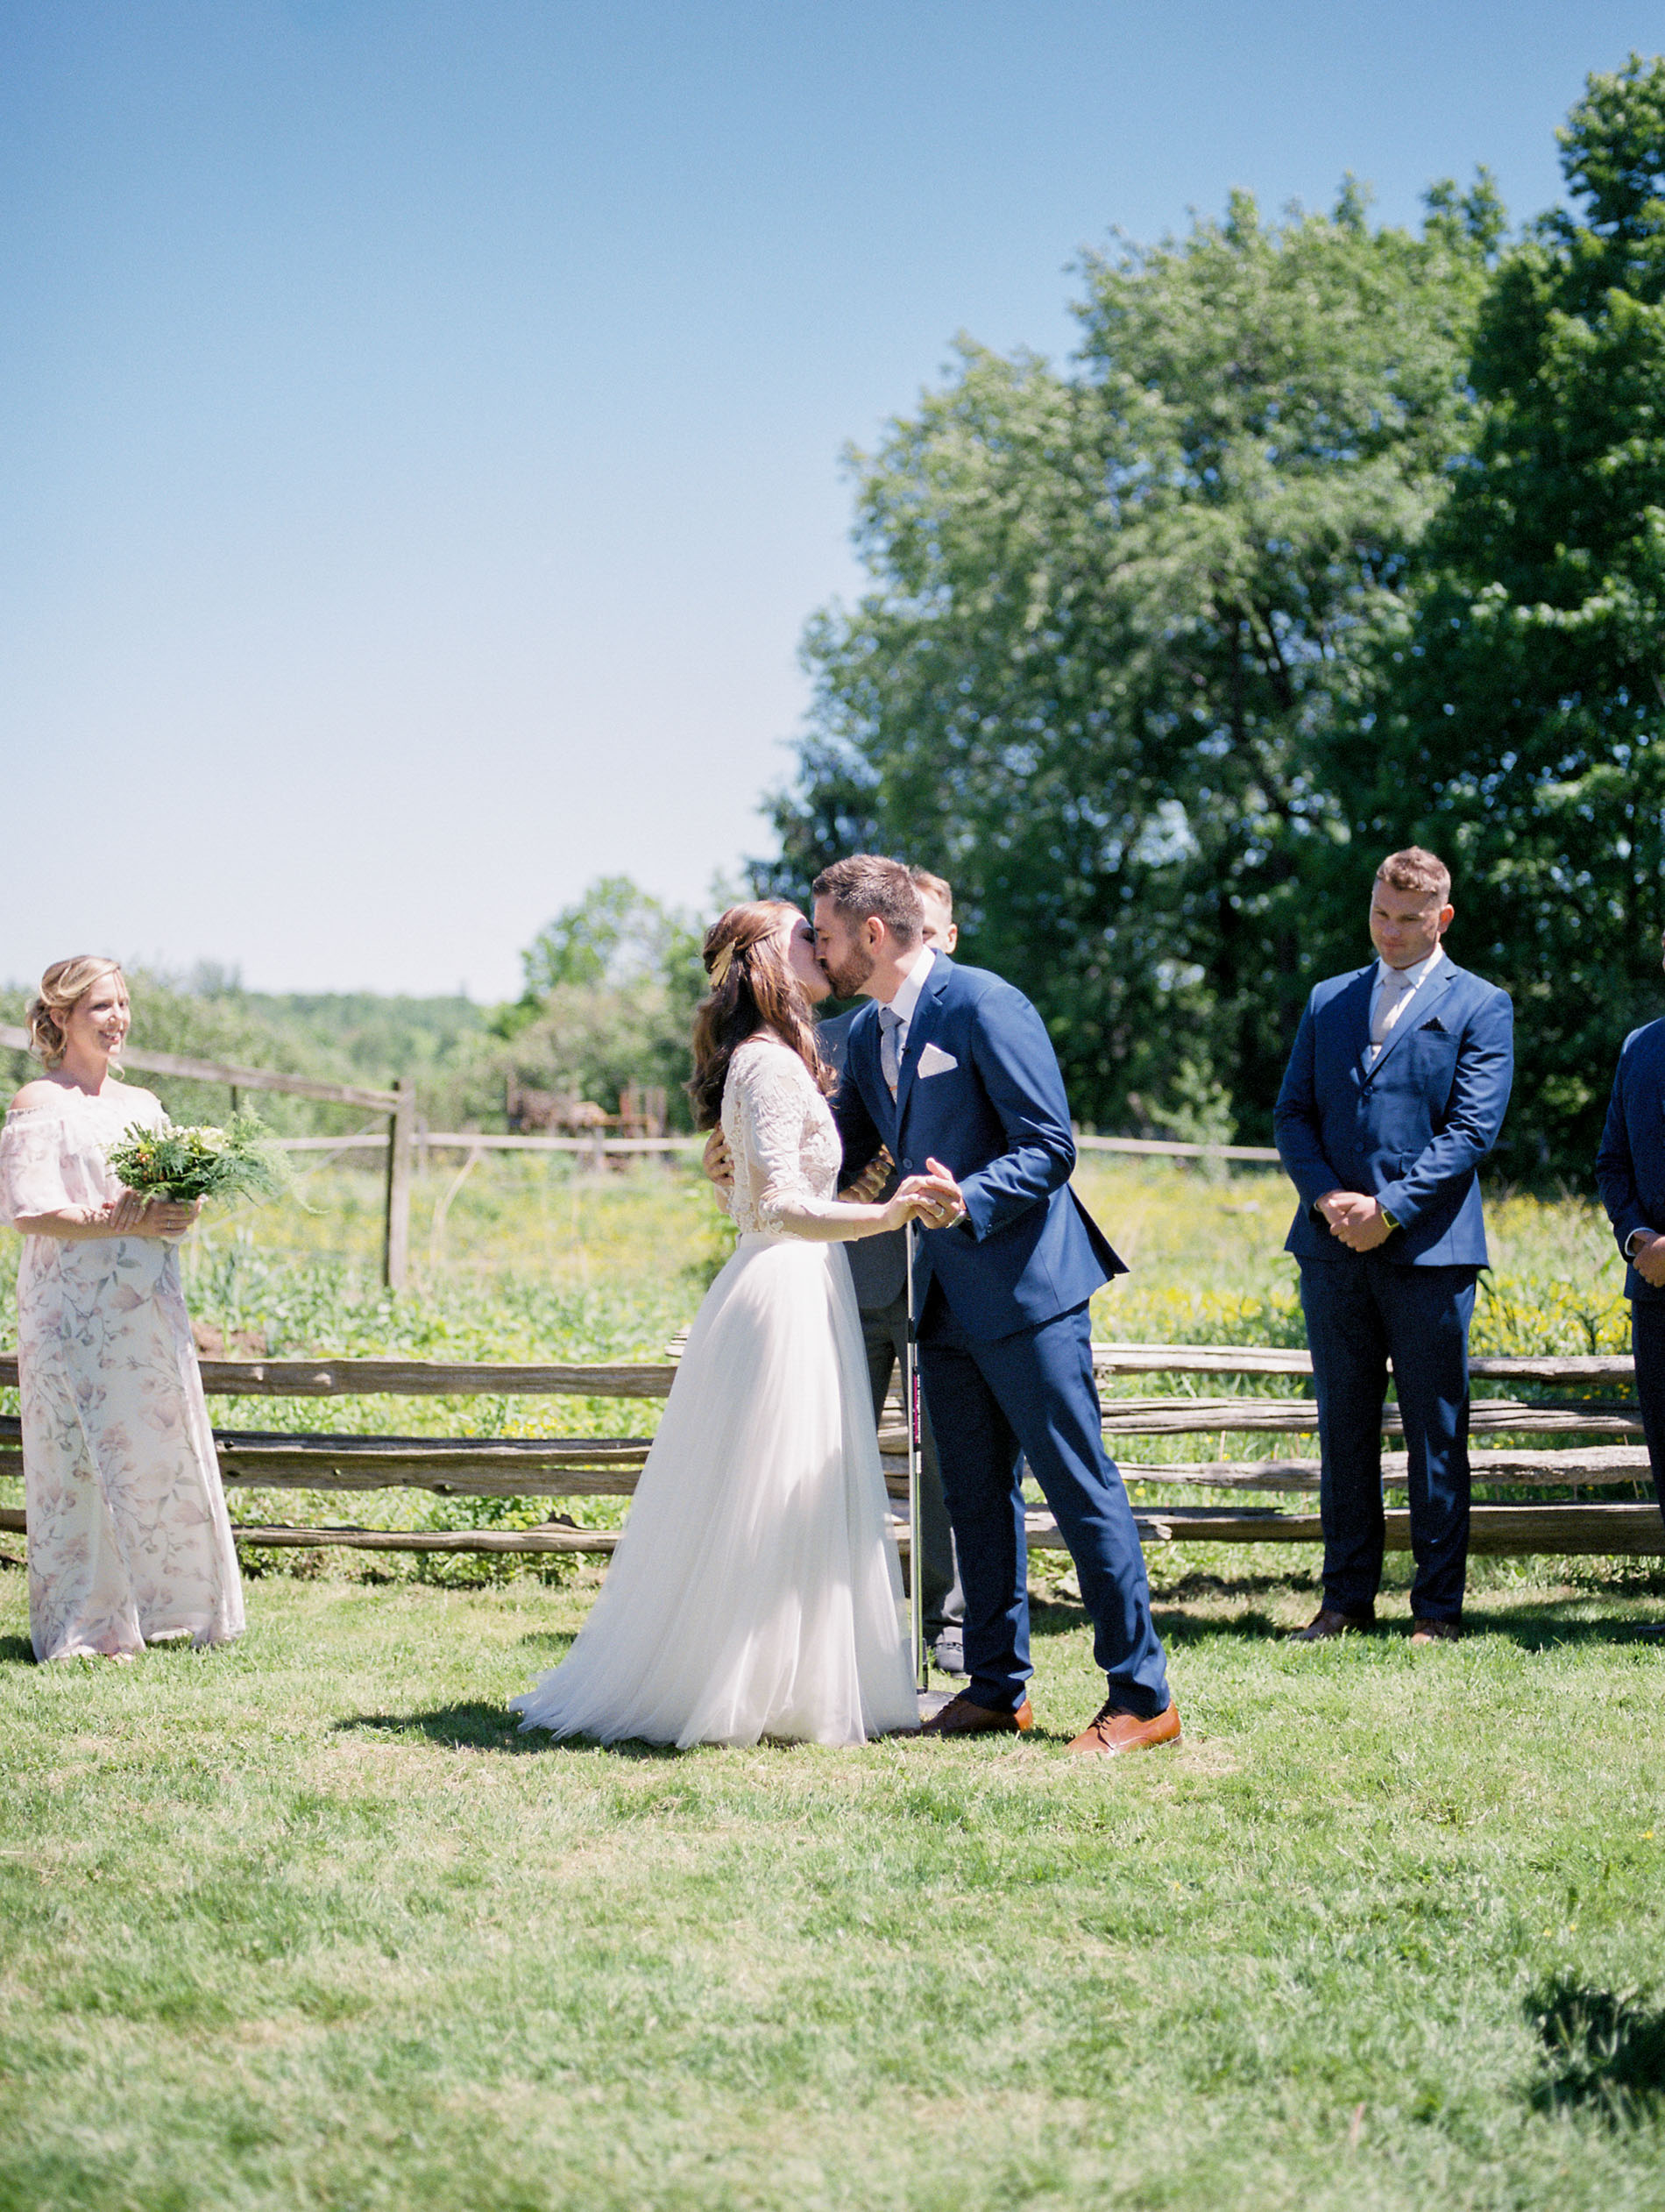 Summer wedding, rustic wedding, farm wedding, barn wedding, NYC wedding, NYC wedding photographer, philadelphia wedding, philadelphia wedding photographer, bride and groom, first look